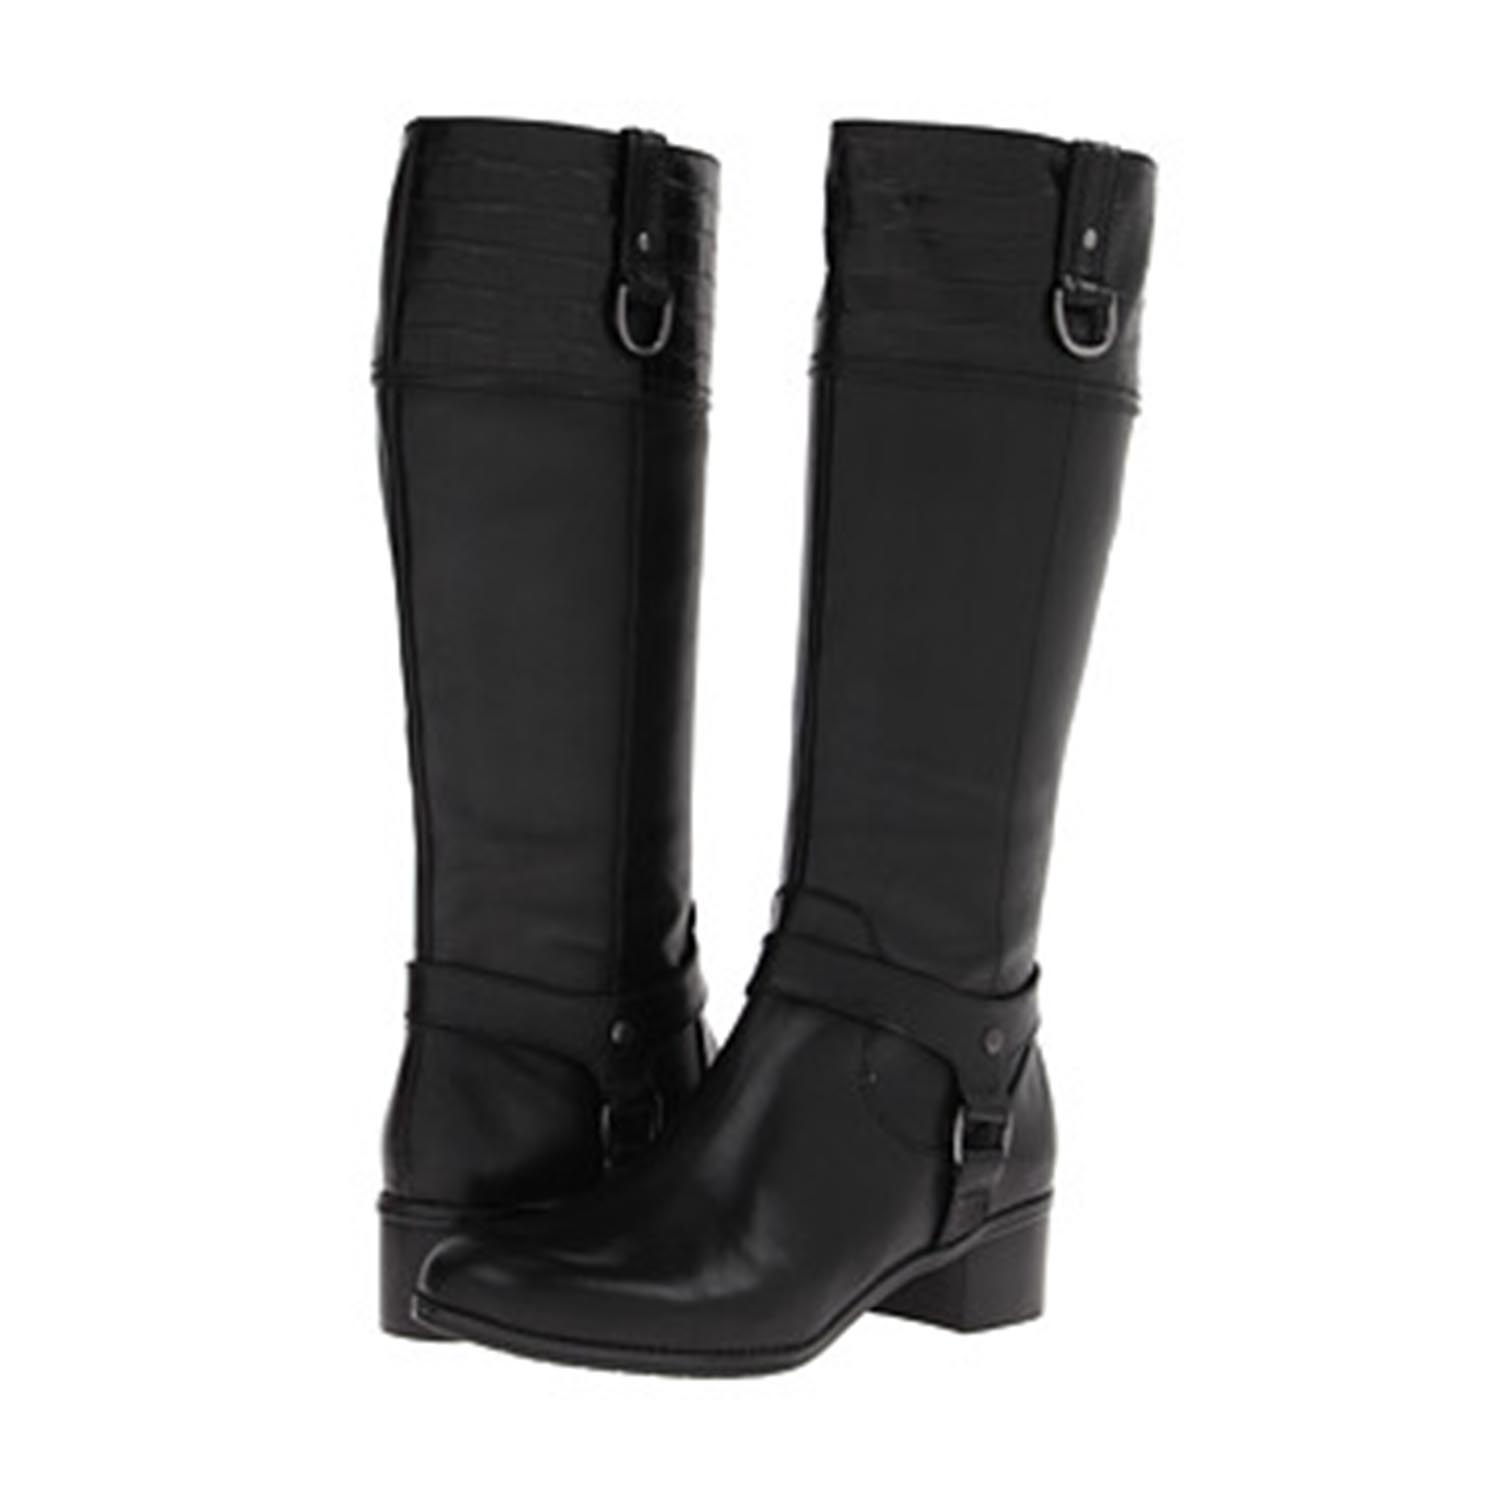 Black Riding Boots For Women aI82FyJN